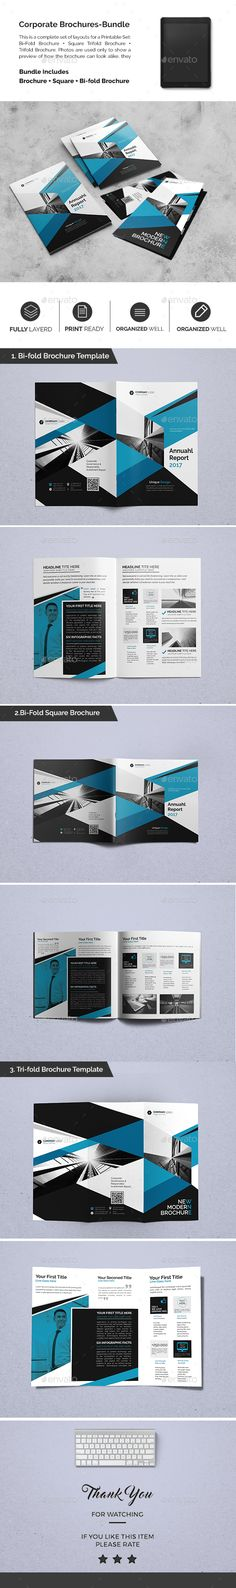 Corporate Brochures 05 PSD Template • Download ➝ https://graphicriver.net/item/corporate-brochures-bundle-05/17052361?ref=pxcr